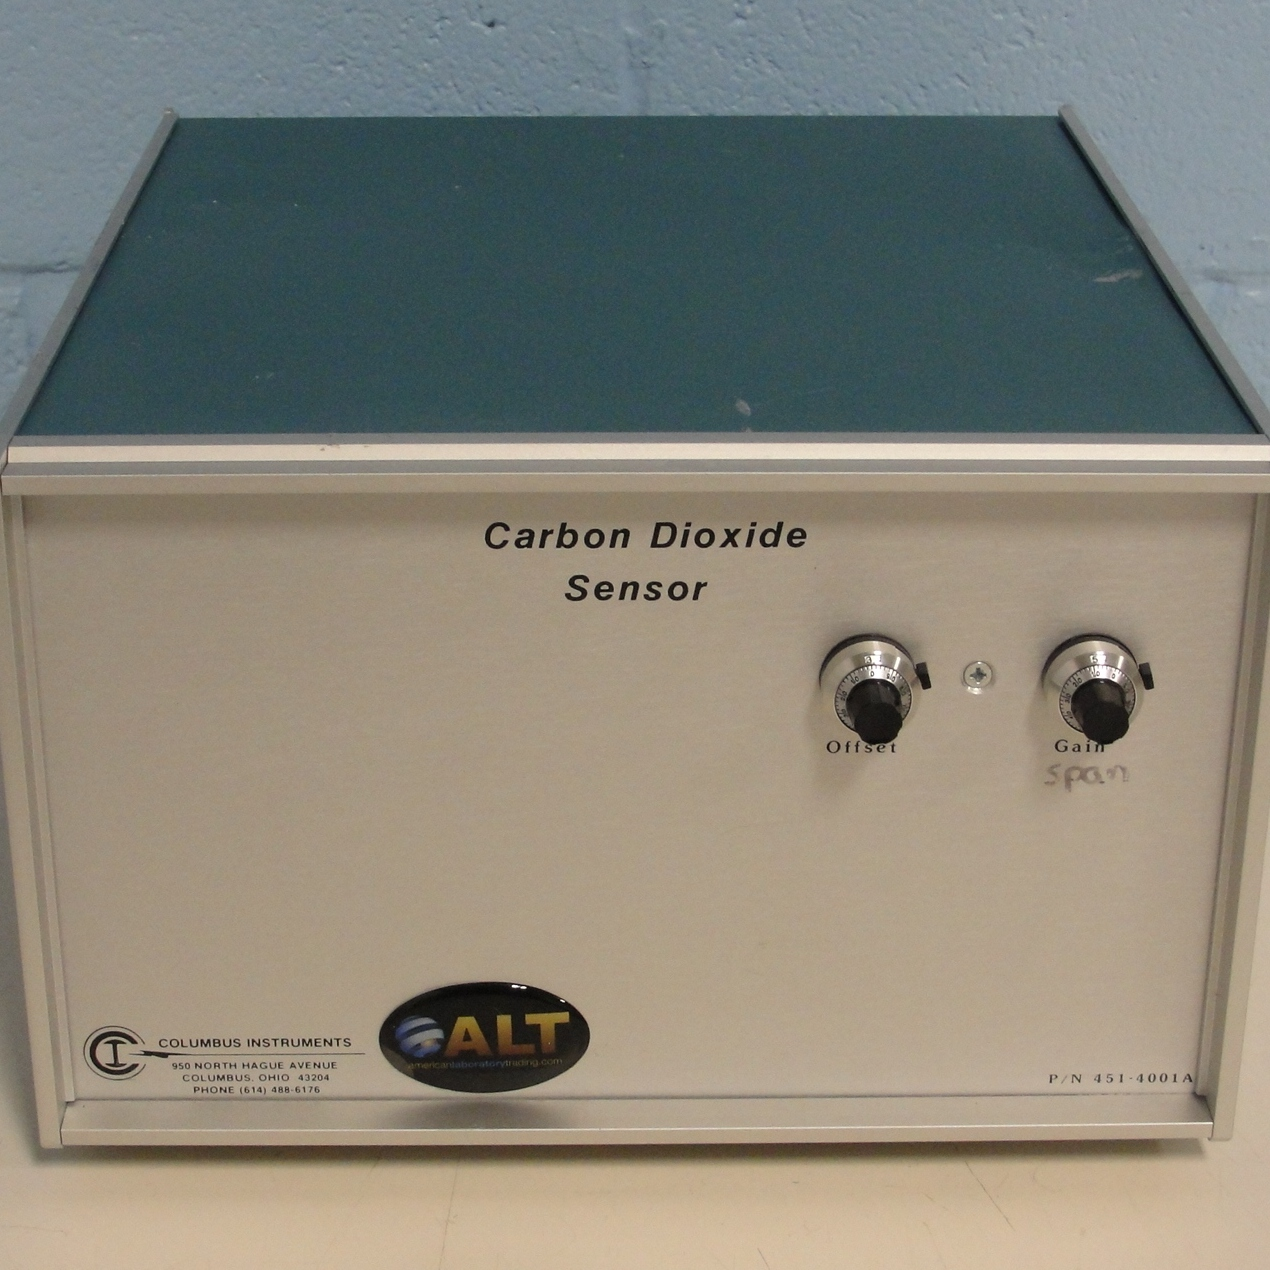 Columbus Instruments Carbon Dioxide Sensor Model CO2 Sensor Image